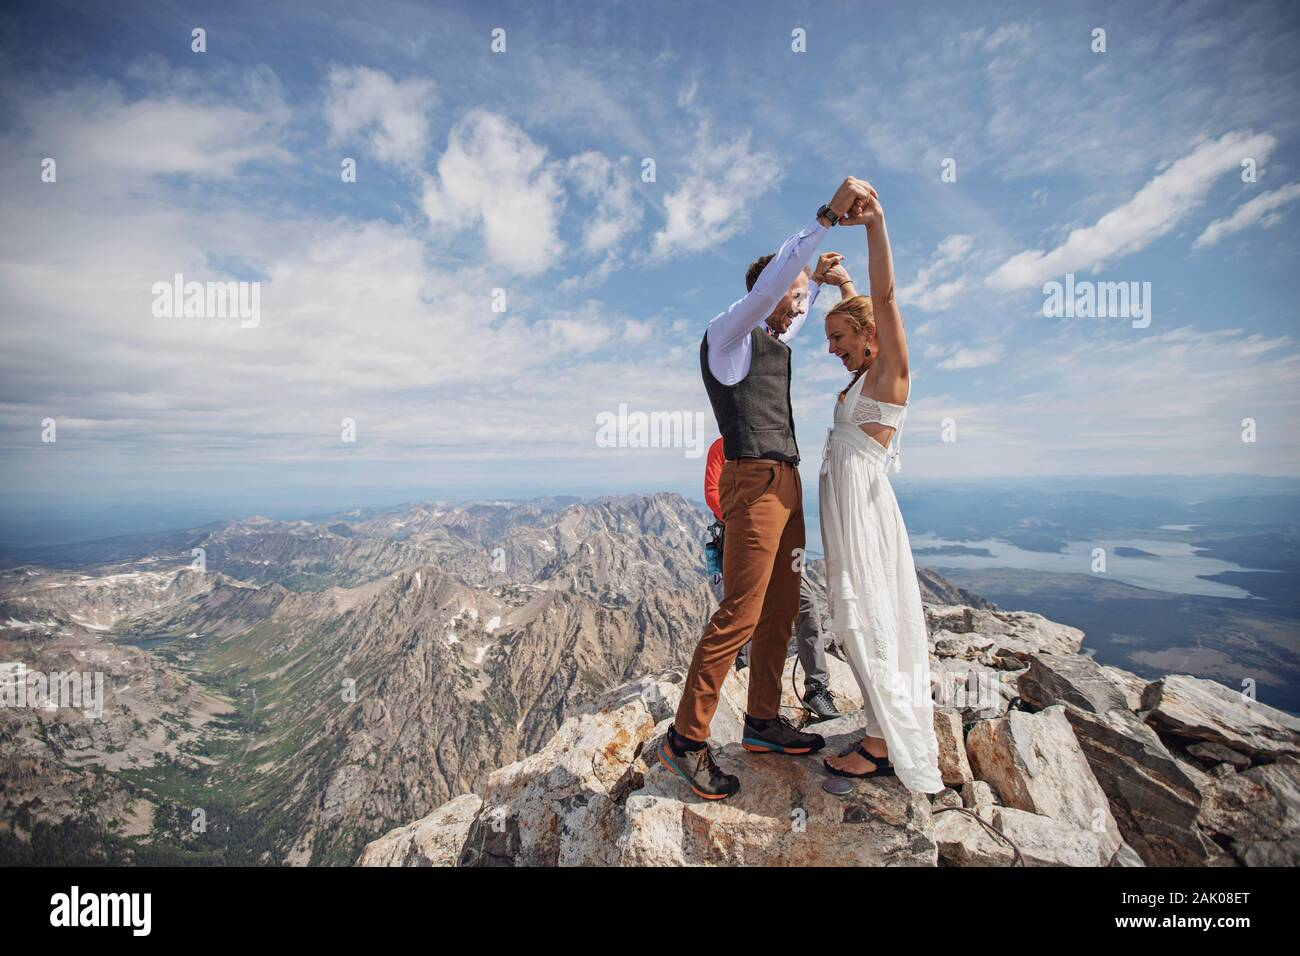 Bride and Groom celebrate after getting married on summit of mountain Stock Photo